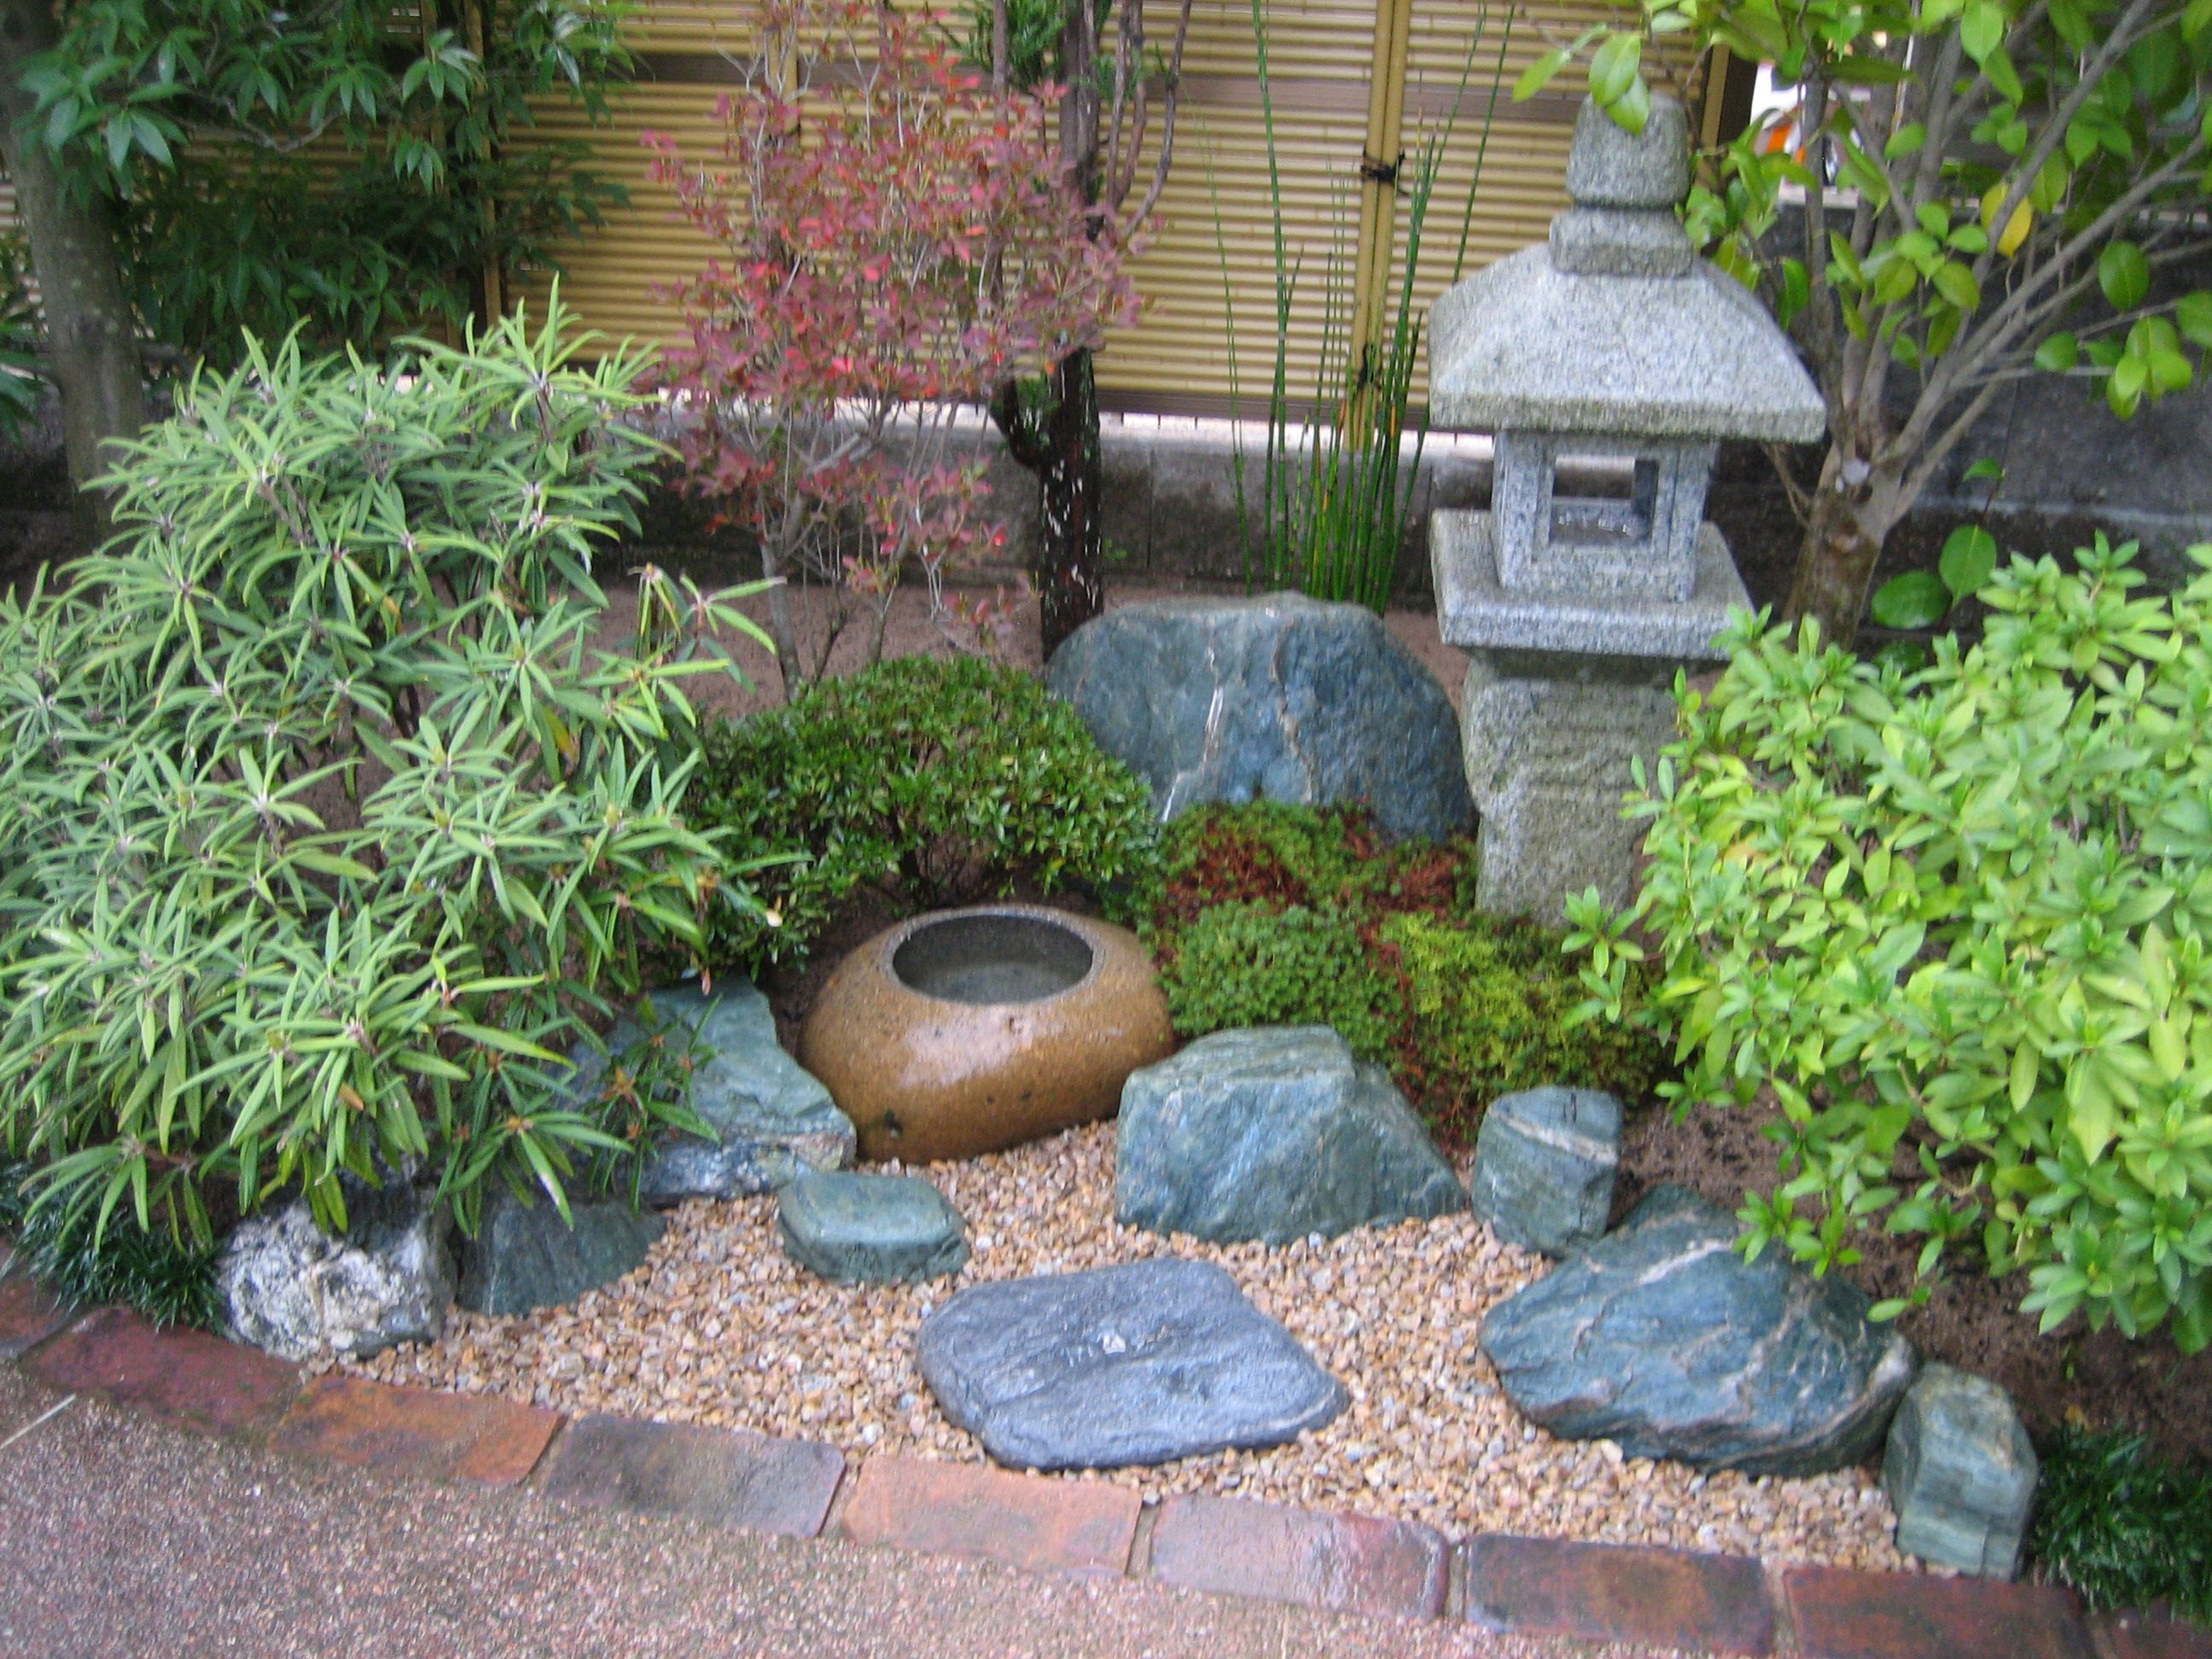 Design Garden Small Zen Garden Ideas Small Space Japanese Garden From Small Garden With Small Space Ideas Japanese Garden Zen Japanese Garden Zen Garden Design